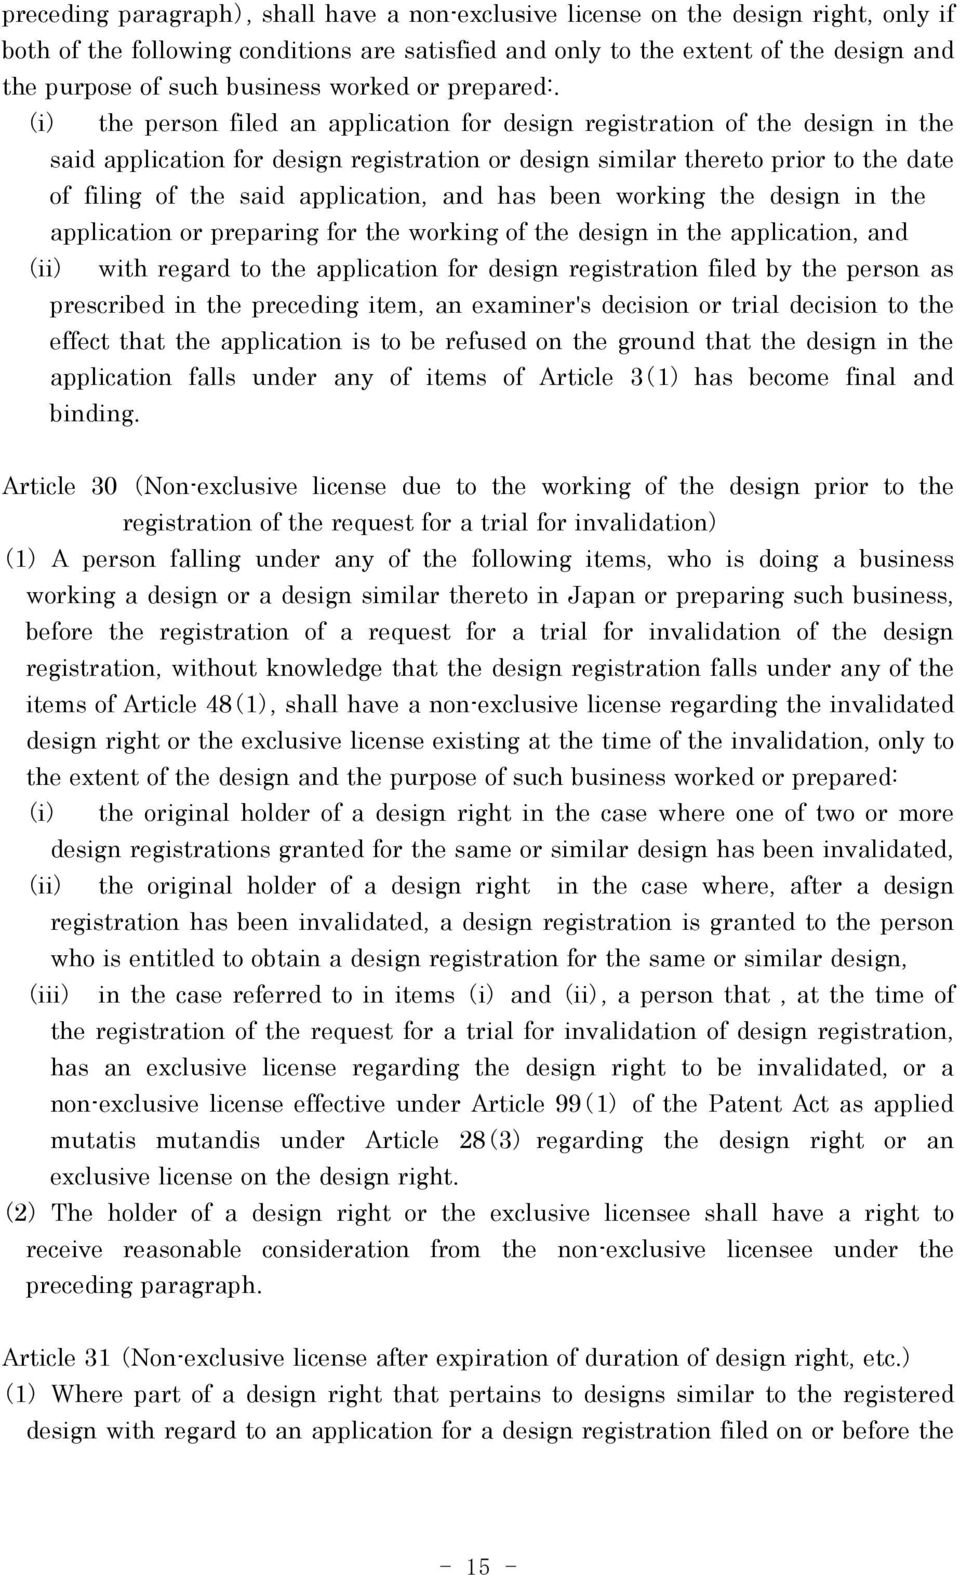 () i the person filed an application for design registration of the design in the said application for design registration or design similar thereto prior to the date of filing of the said